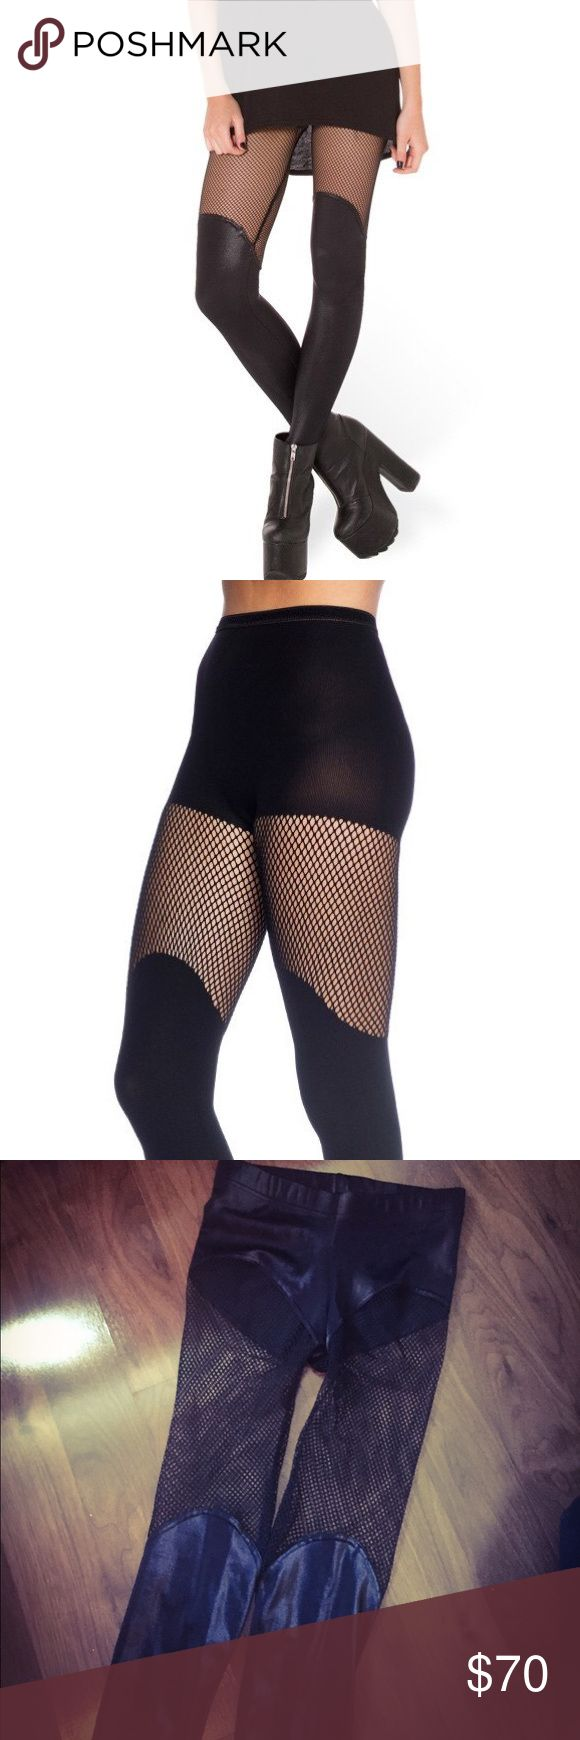 Black Milk Fishnet Leggings Out of stock on their website, may not be returning. Stunning fishnet leggings. Labeled a large but this style fits more like a medium, so listed accordingly. Edgy, sexy and head turning. Perfect condition, Black Milk Pants Leggings